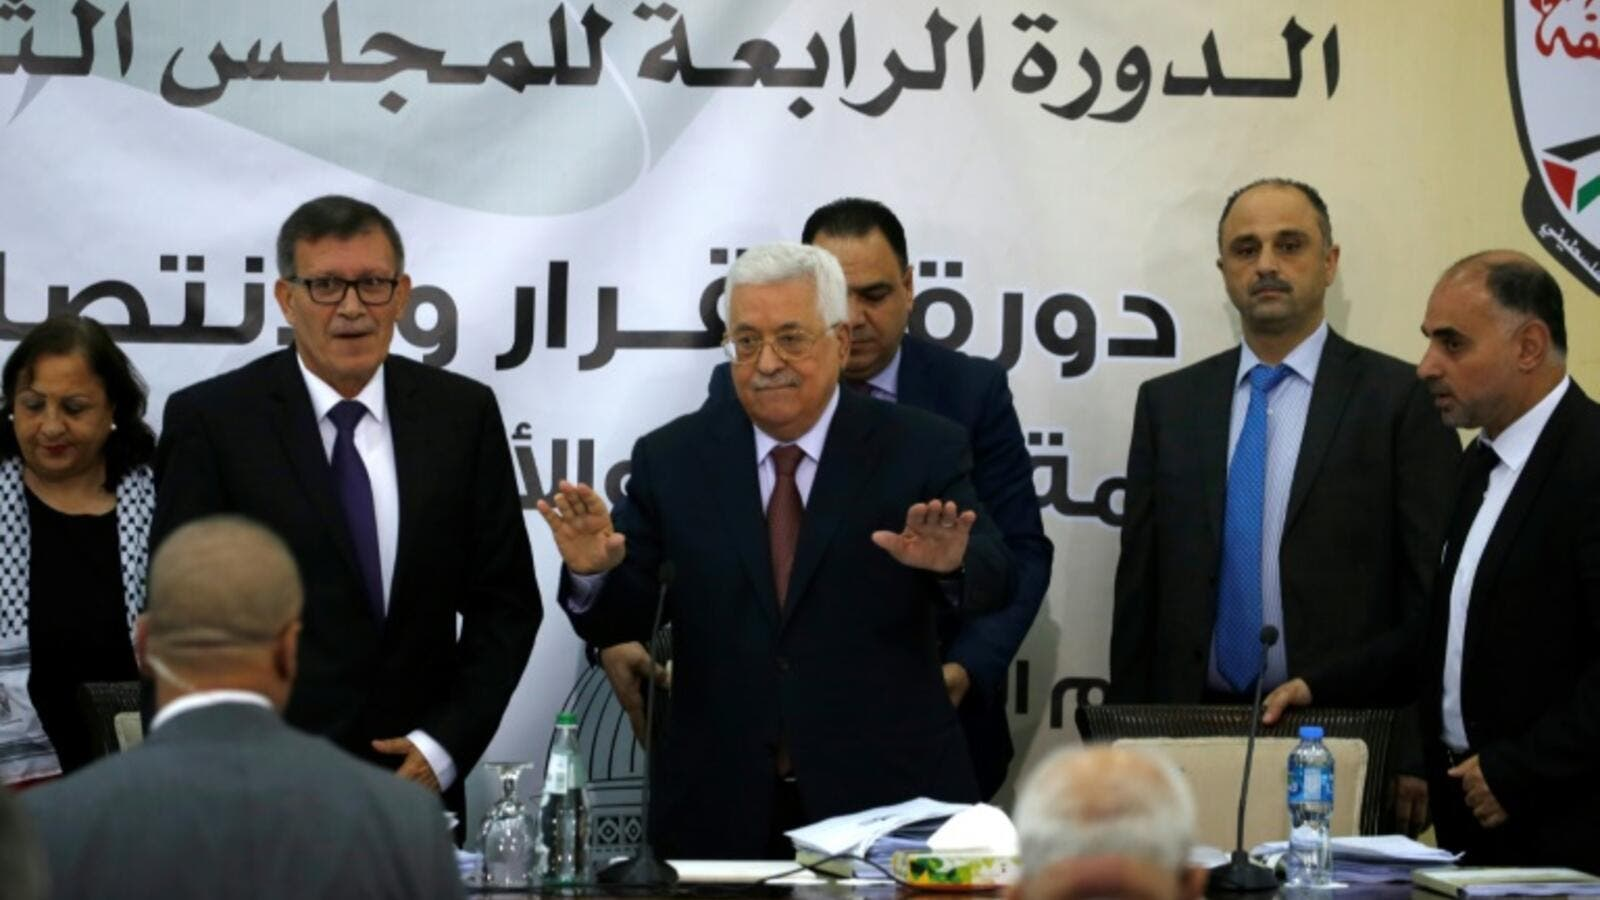 Palestinian Authority president Mahmud Abbas attends a meeting with the Revolutionary Council of the ruling Fatah party. (AFP/ File)